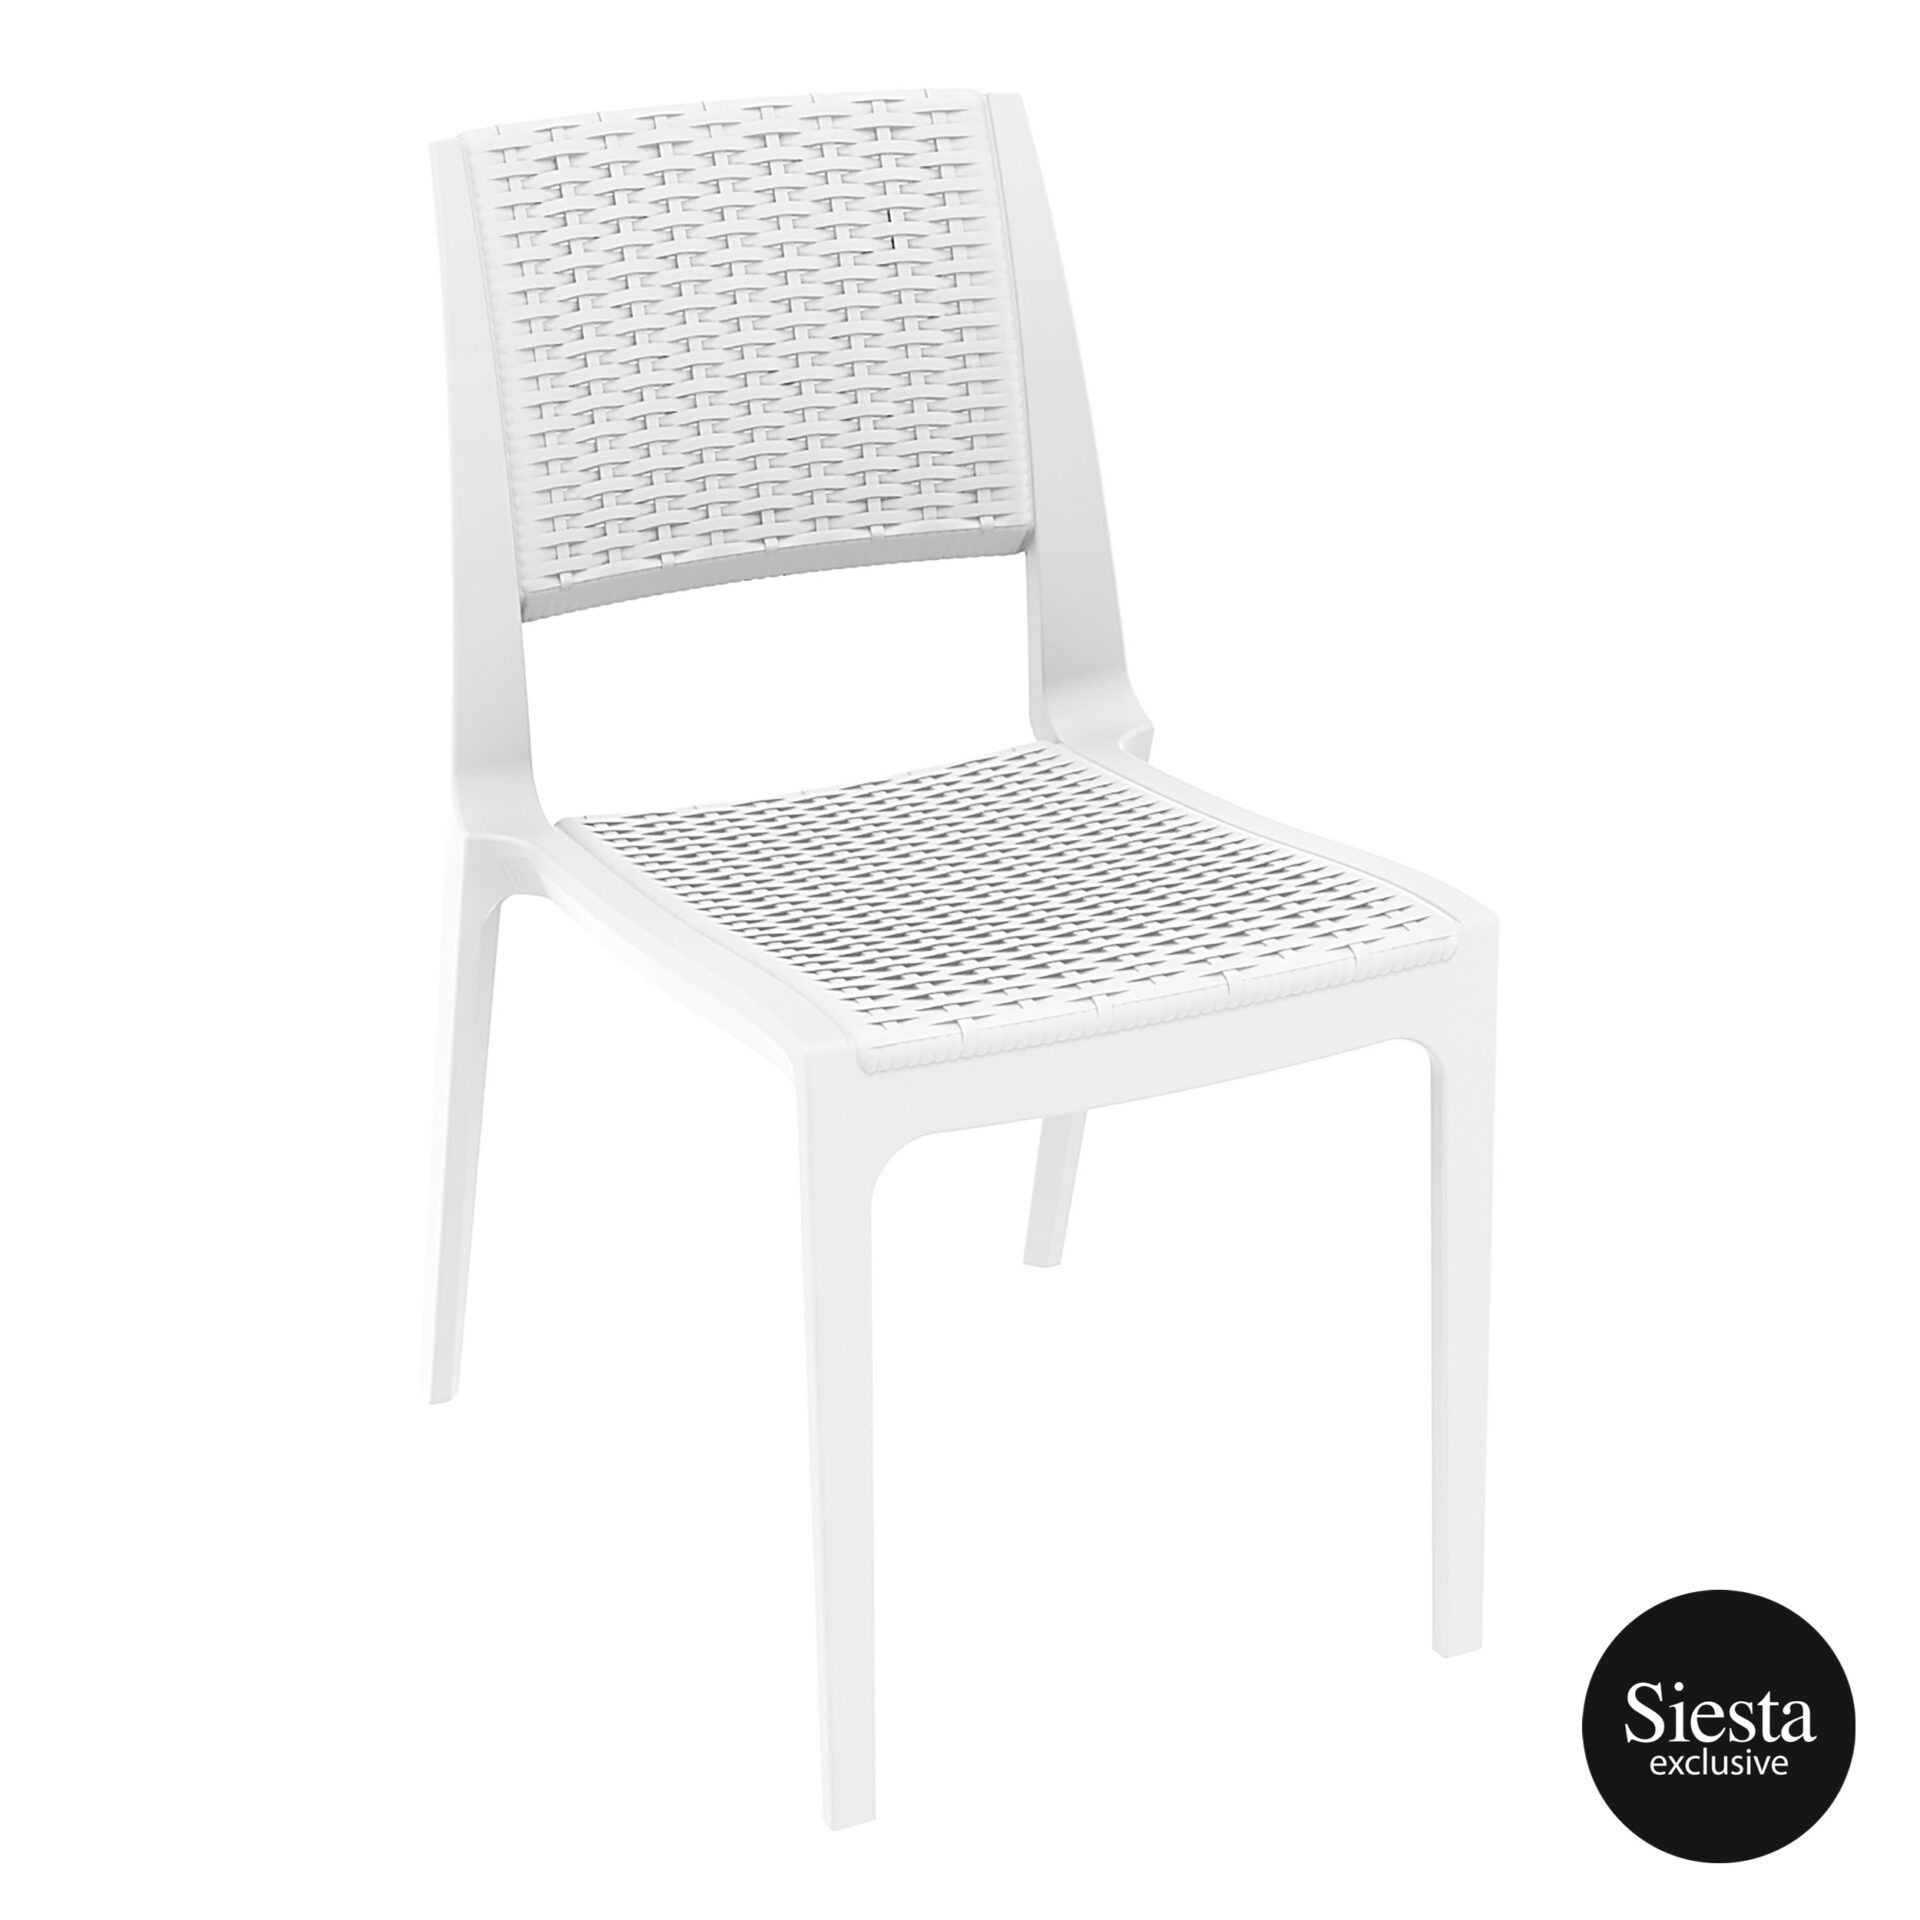 resin rattan outdoor cafe verona chair white front side 1